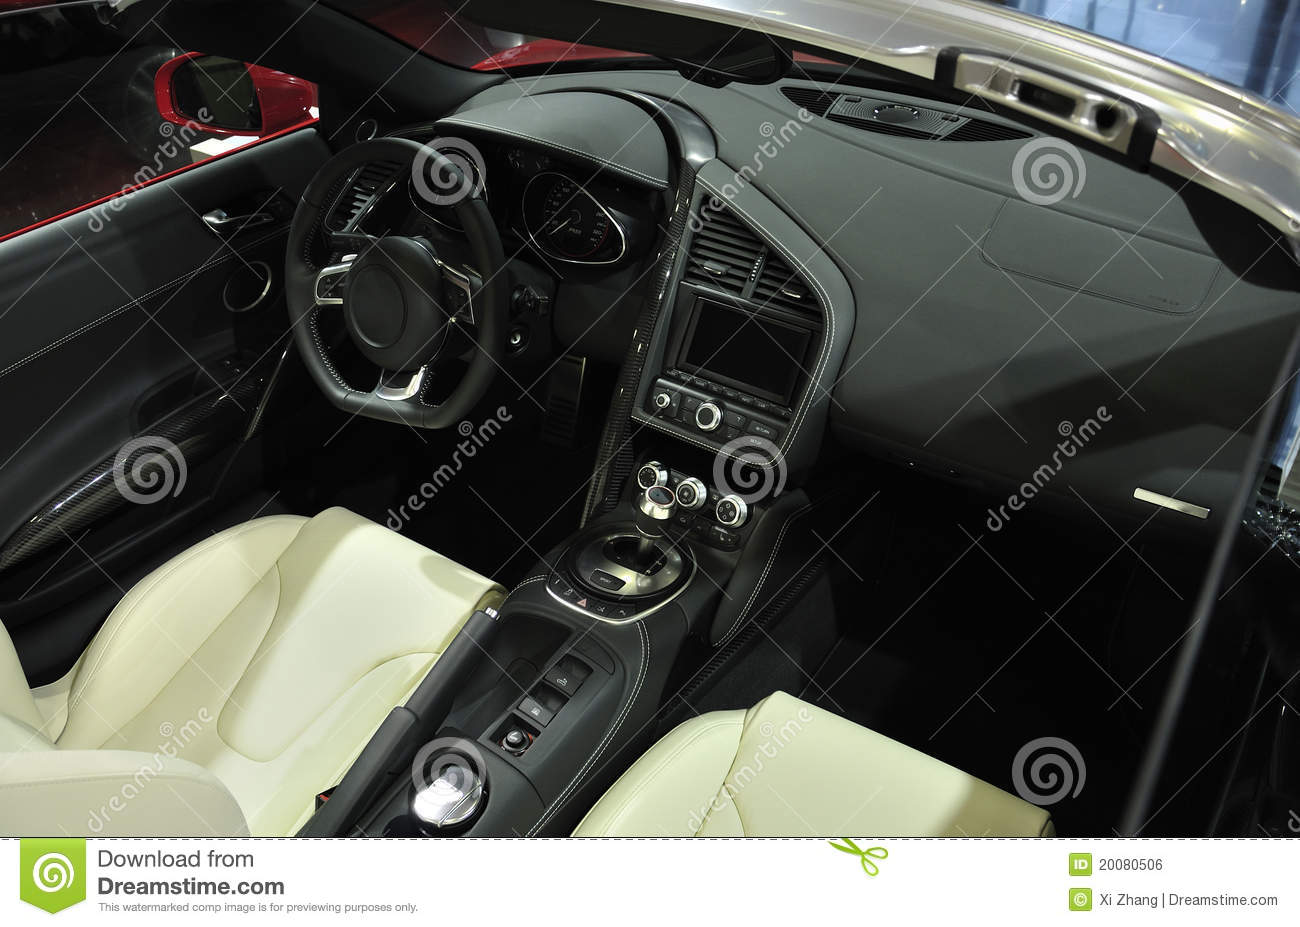 super sport car interior royalty free stock image image 20080506. Black Bedroom Furniture Sets. Home Design Ideas